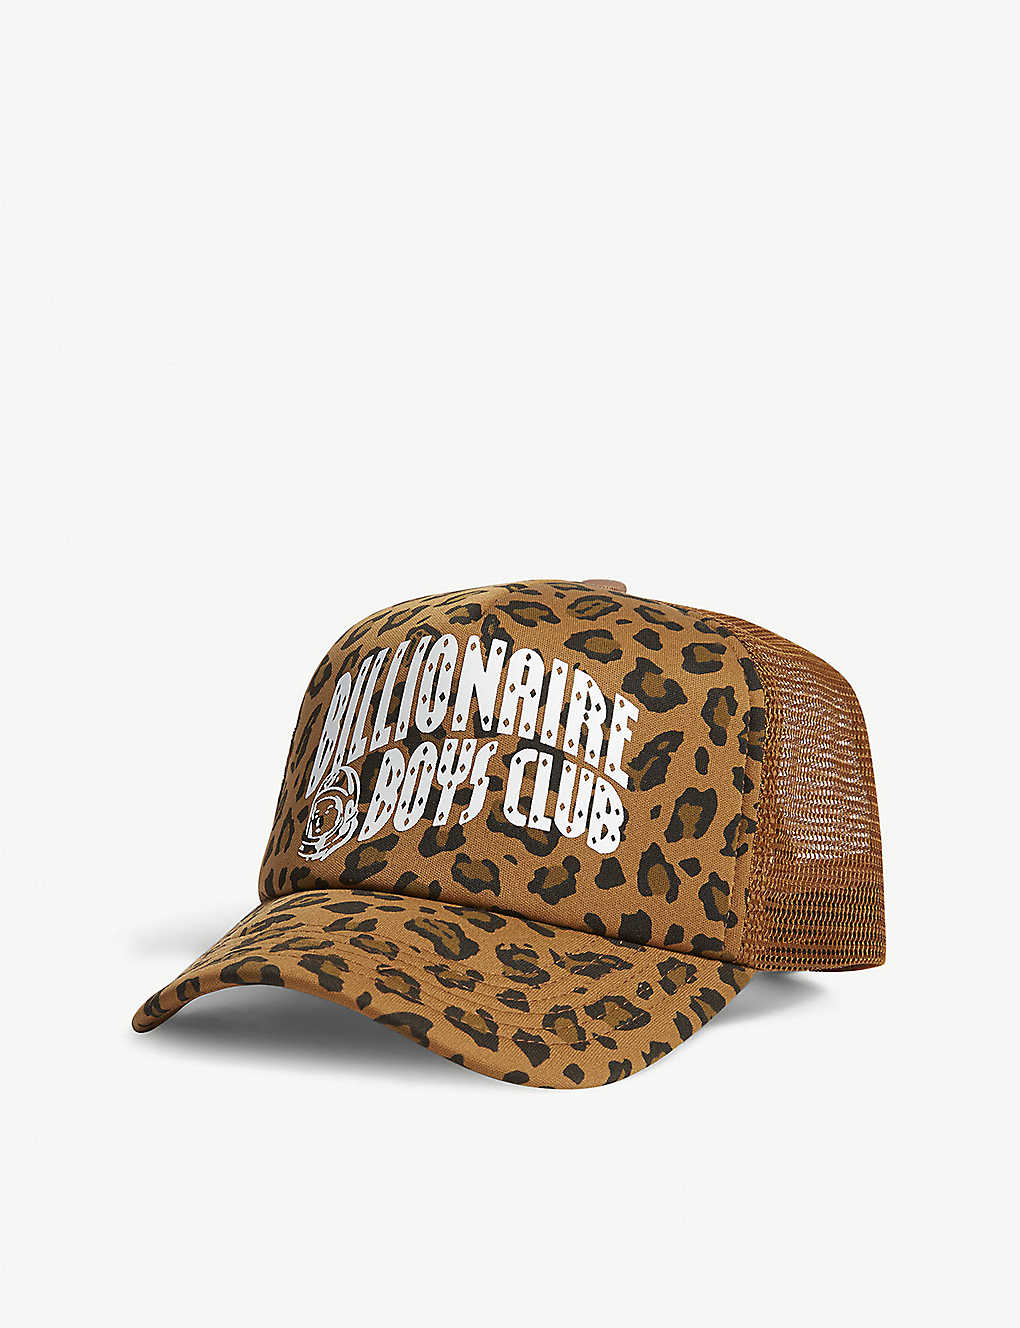 Leopard Print Trucker Cap In Green - Green Billionaire Boys Club